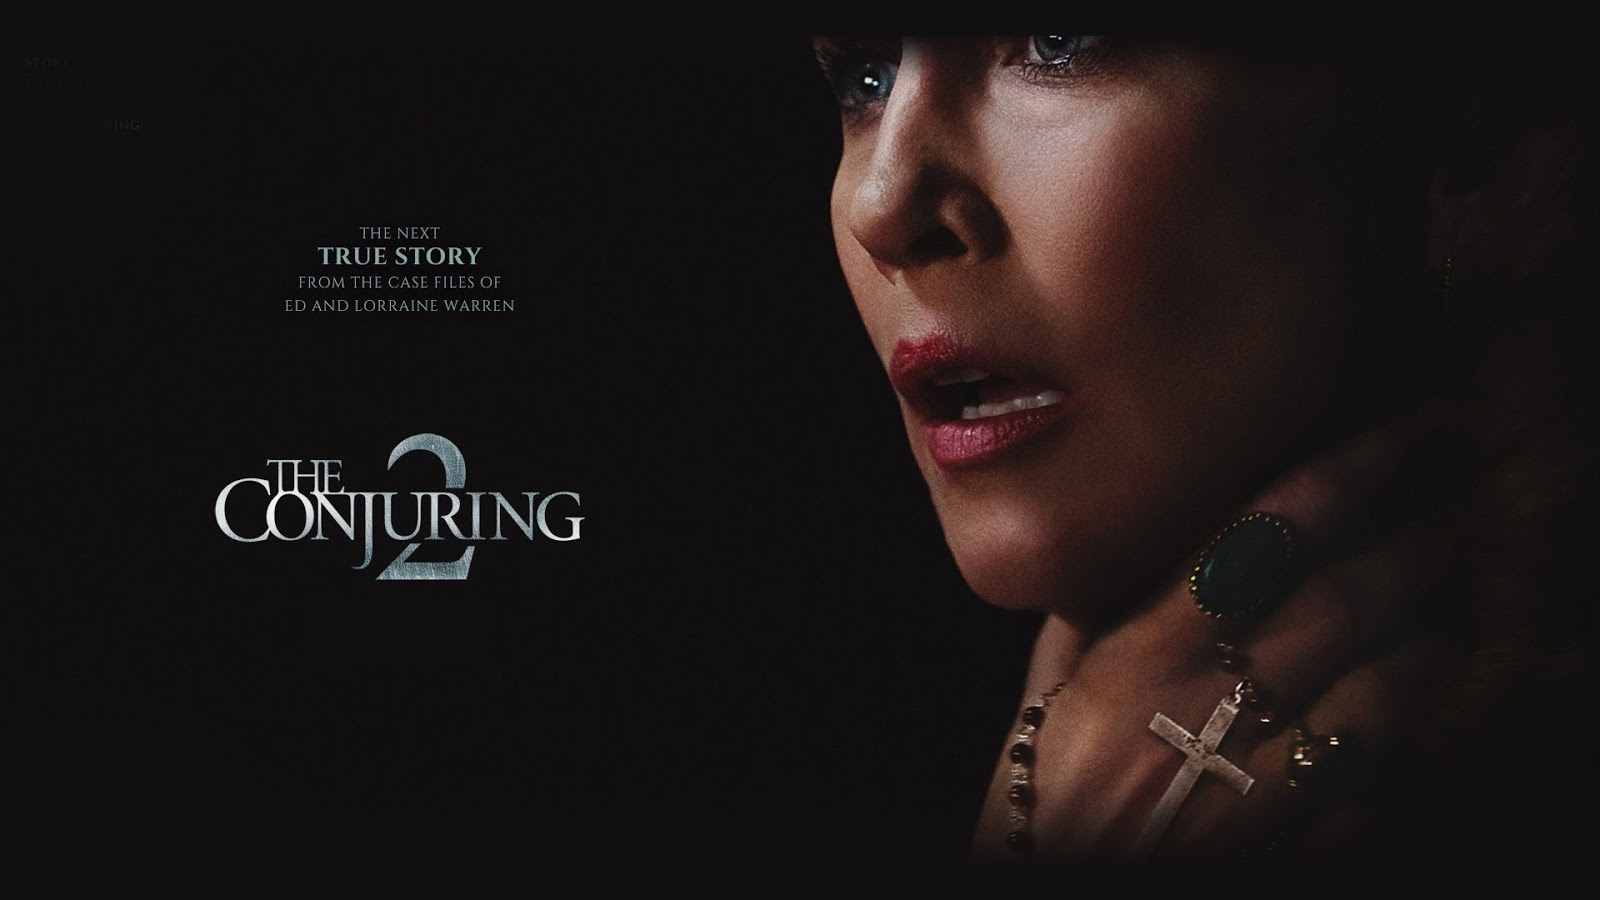 the conjuring full movie download 1080p